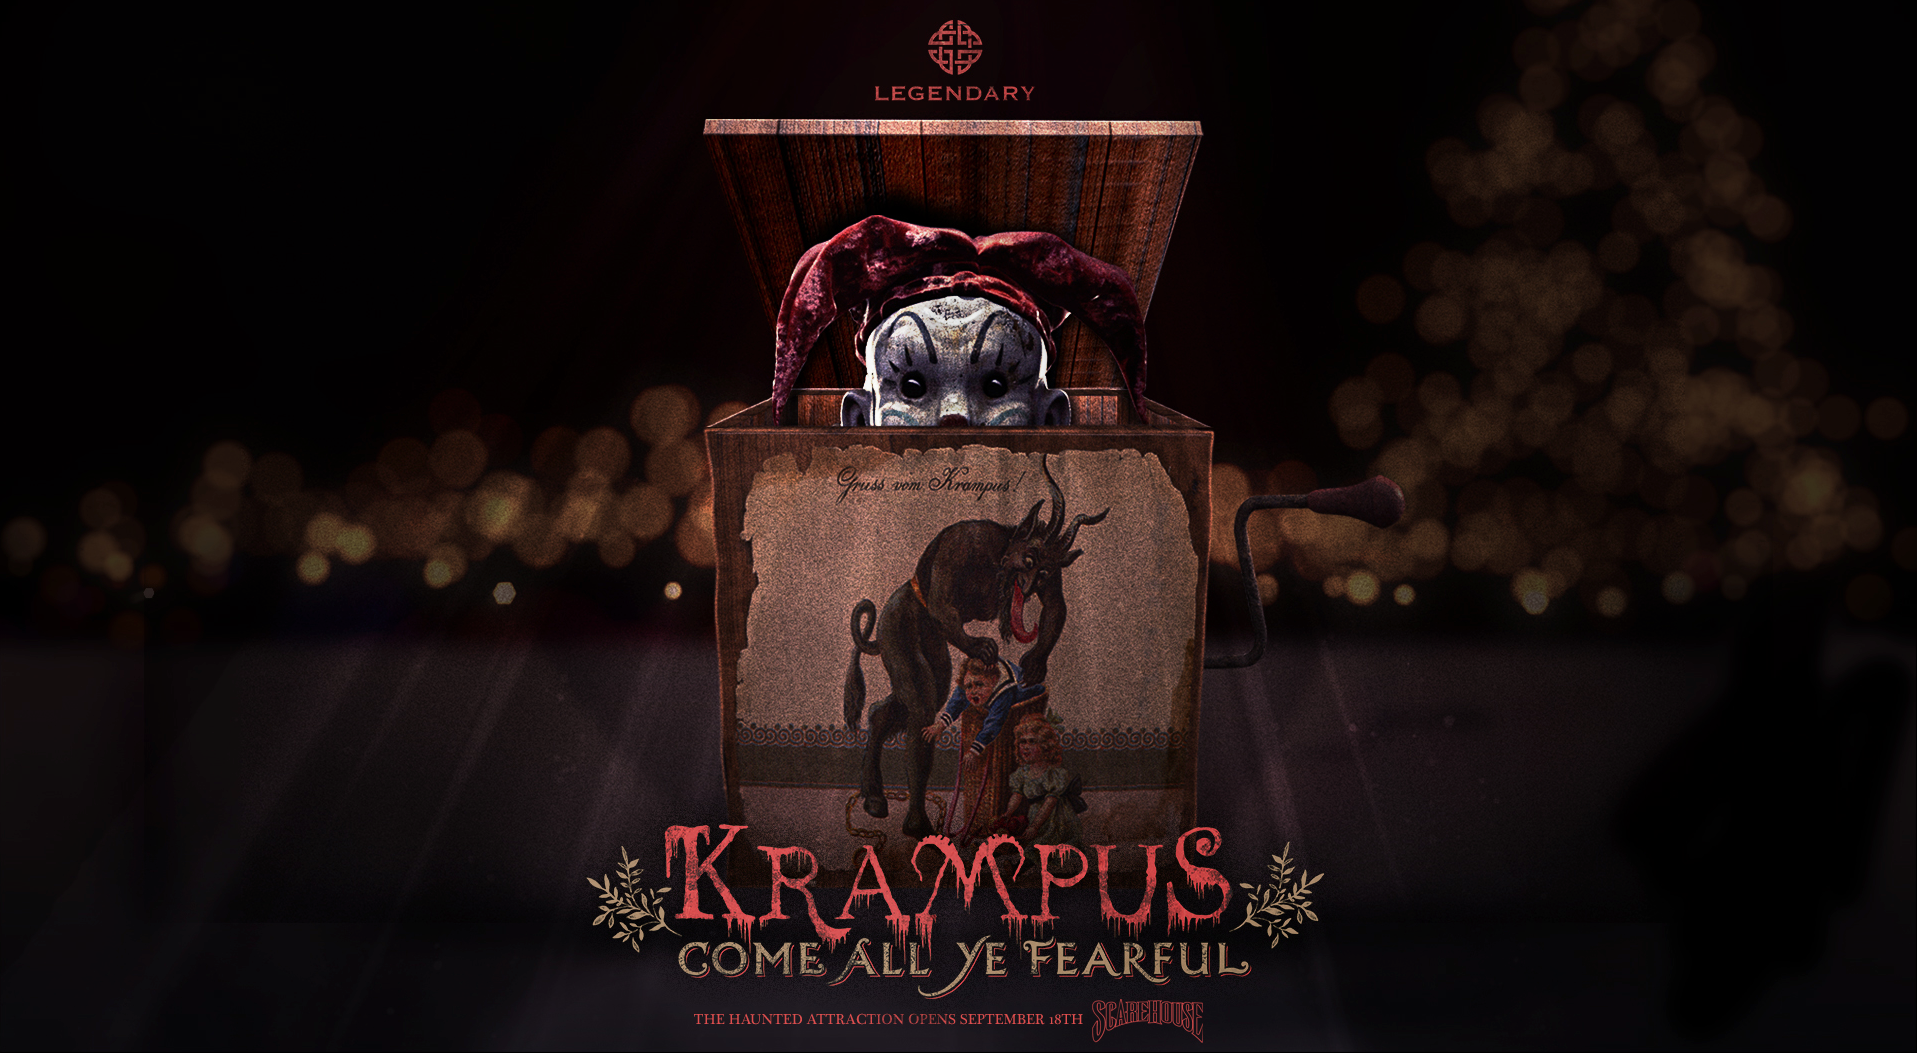 Krampus Film 2019 Stream